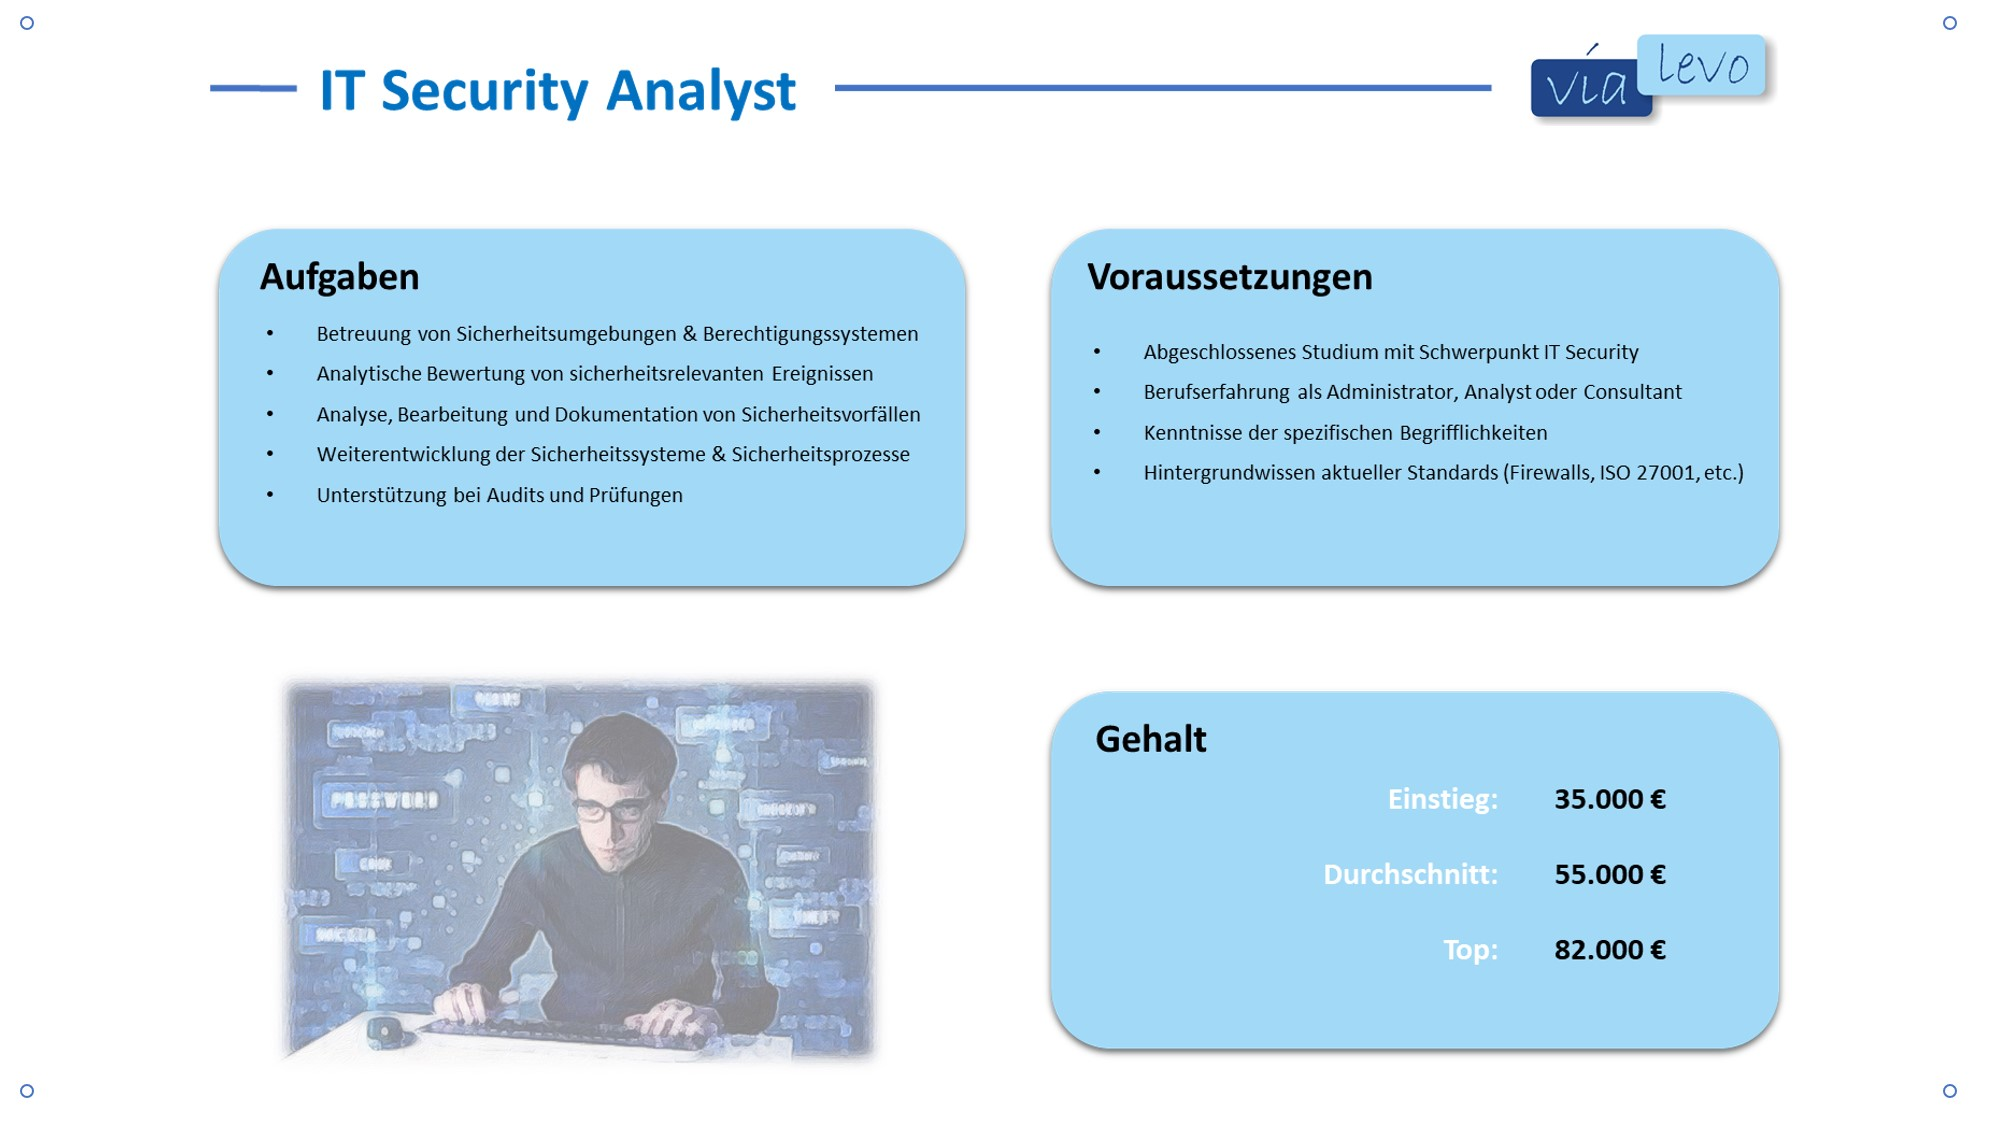 IT Security Analyst Gehalt